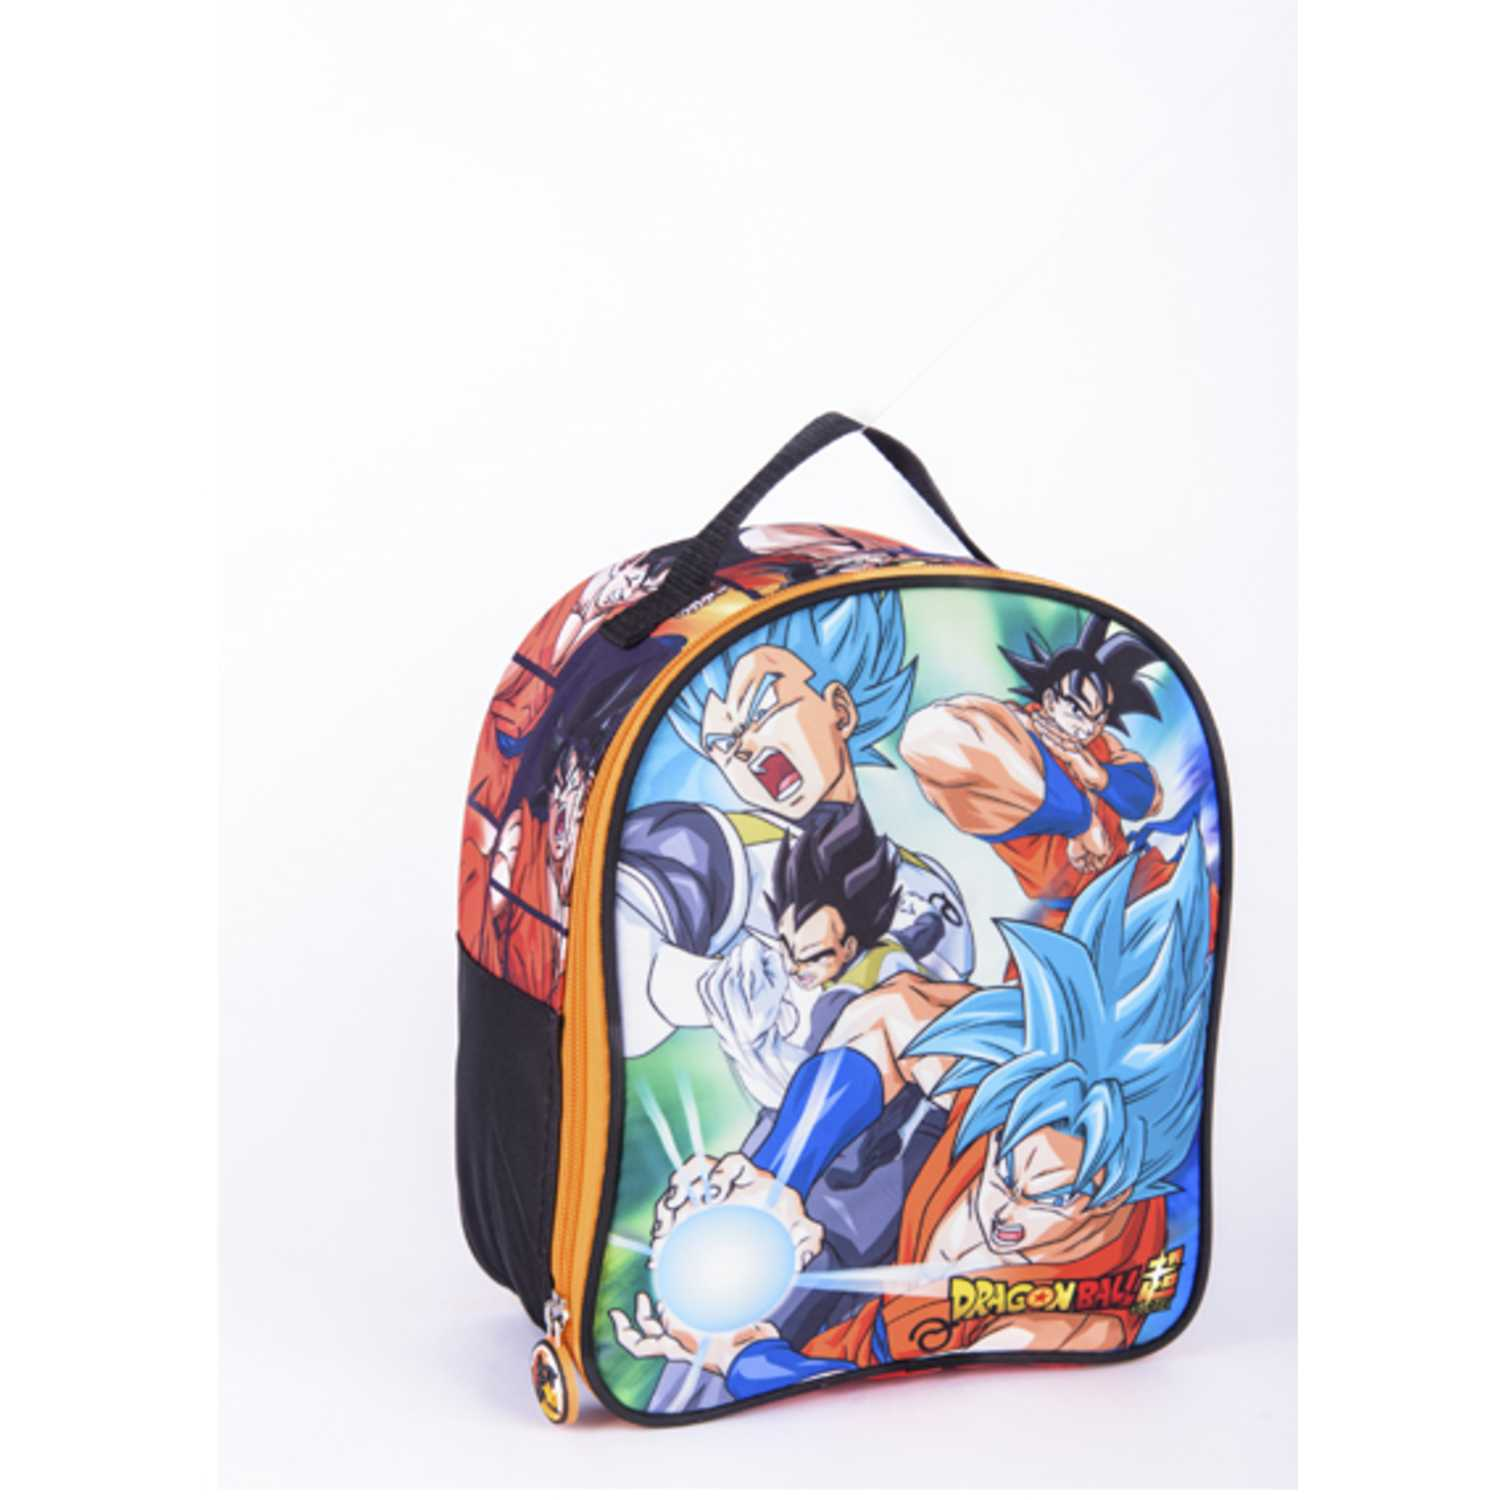 Lonchera de Niño Scool Varios 9 scool dragon ball lonch cuento dlx